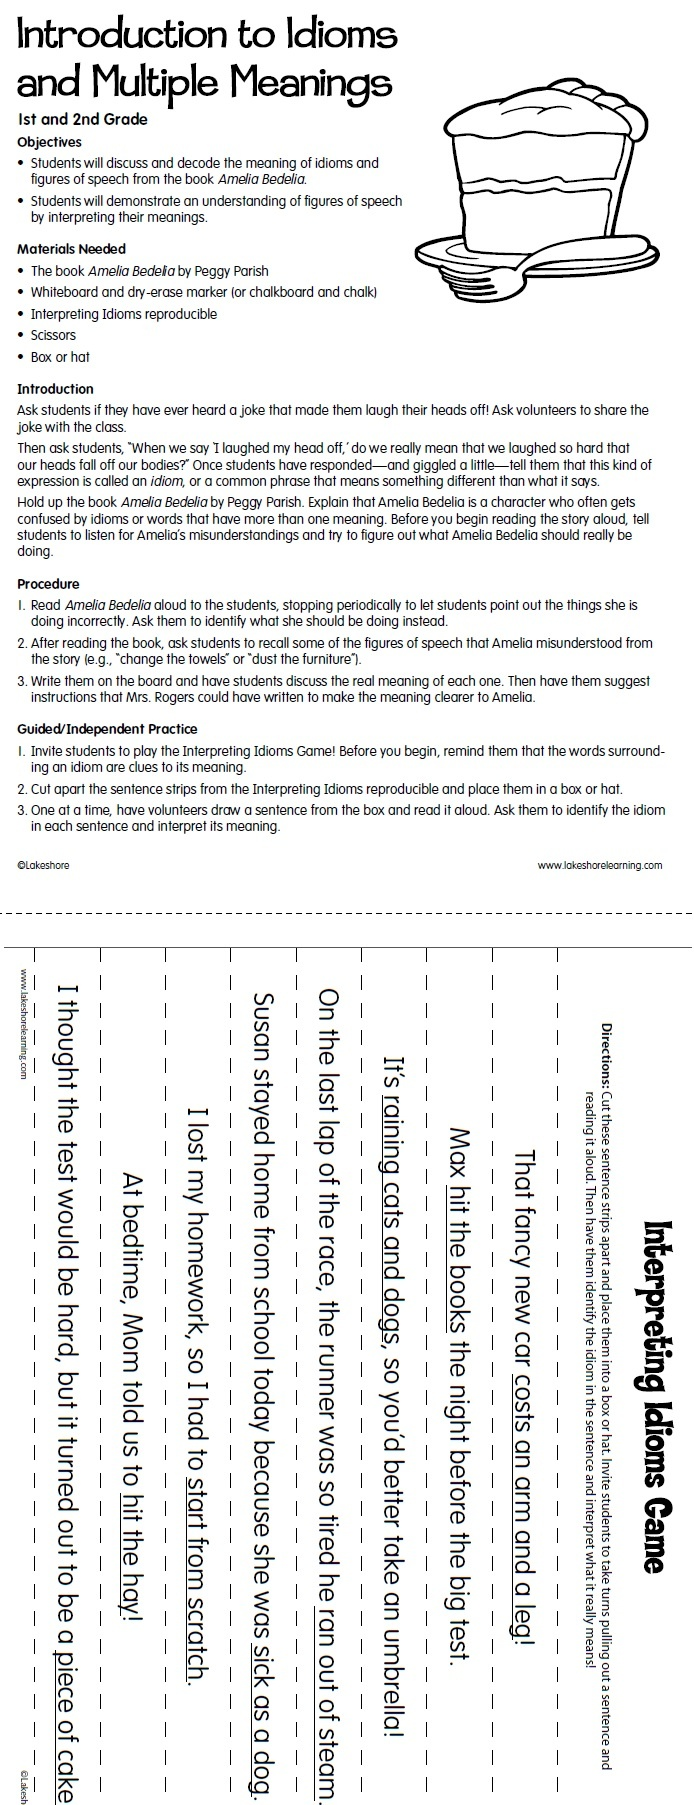 Introduction to Idioms Lesson Plan from Lakeshore Learning